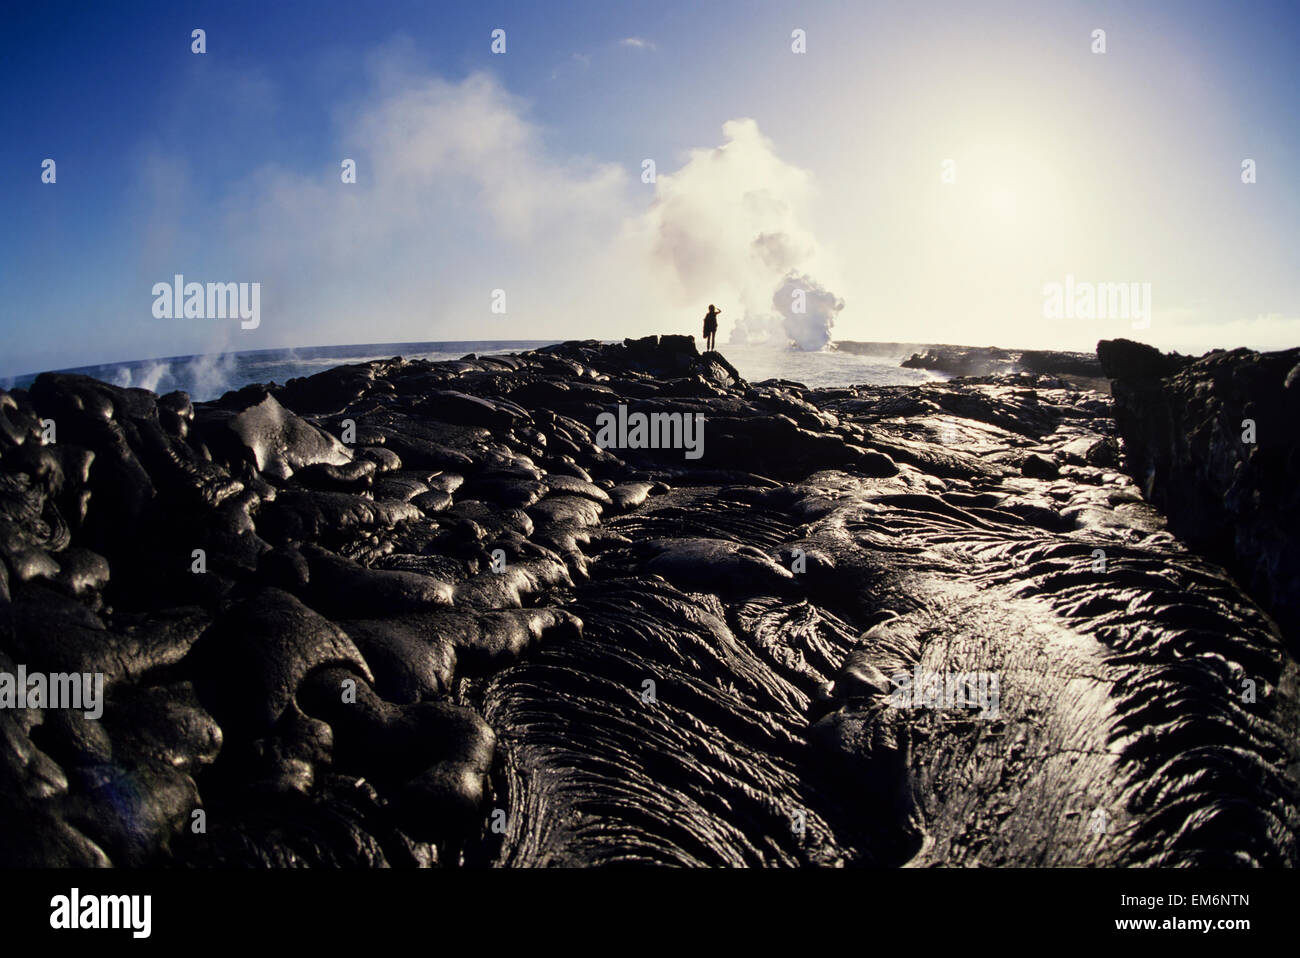 Hawaii, Big Island, Hawaii Volcanoes National Park, East Rift Zone, Person Observing Lava Flow Into Ocean In Distance. - Stock Image